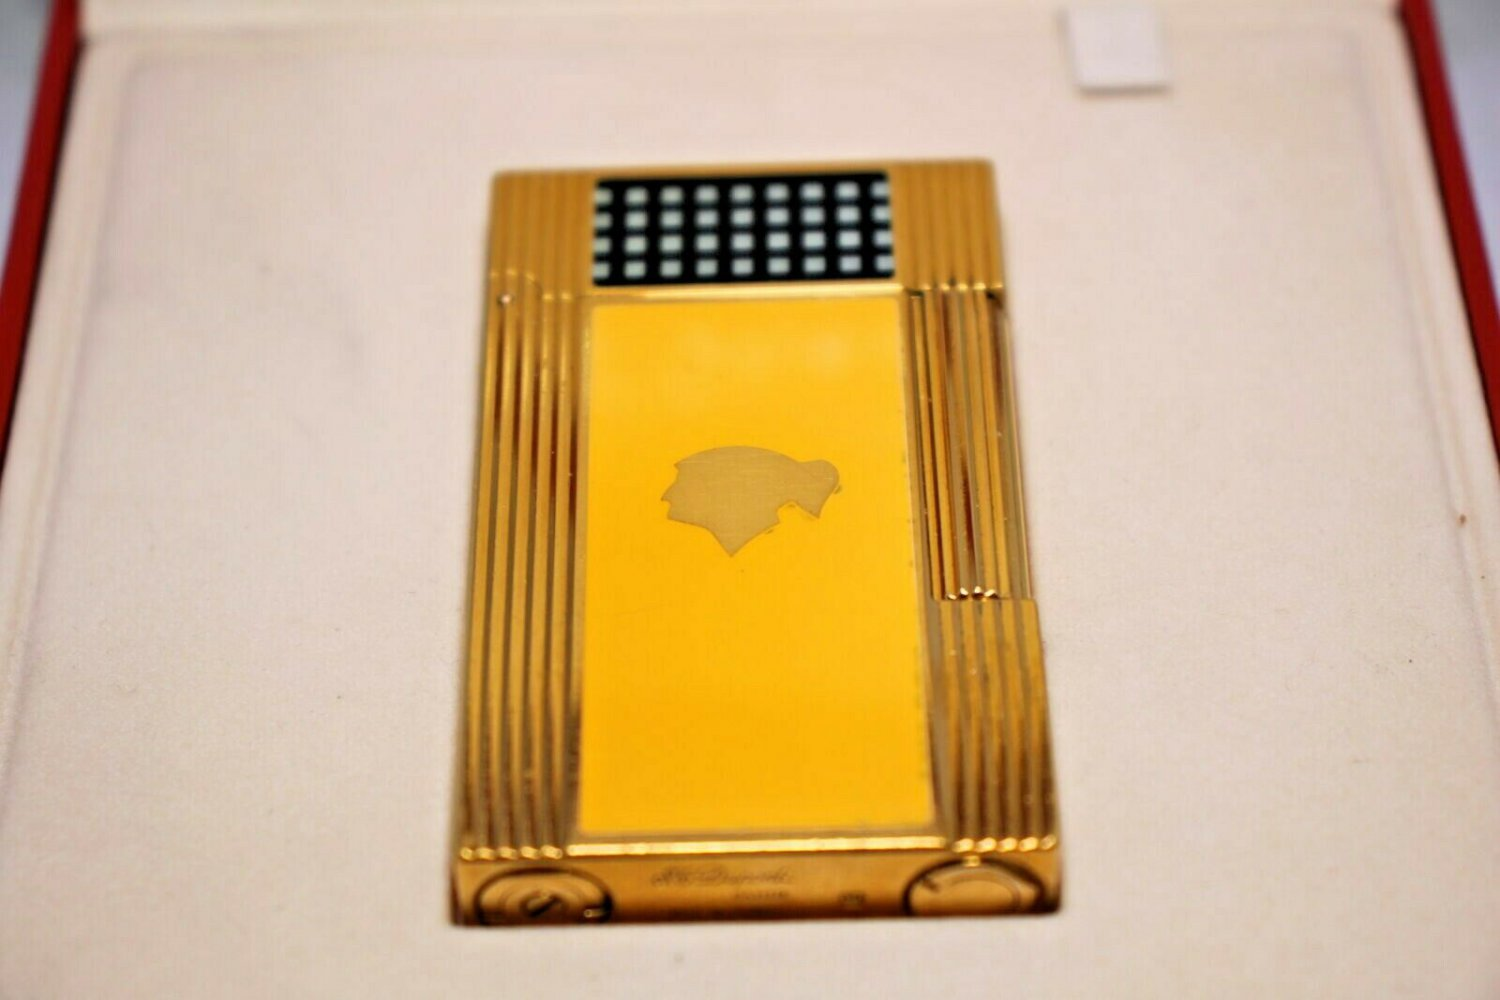 St Dupont Cohiba  Lighter, 1st Limited Edition of Only 500 Comes In Box